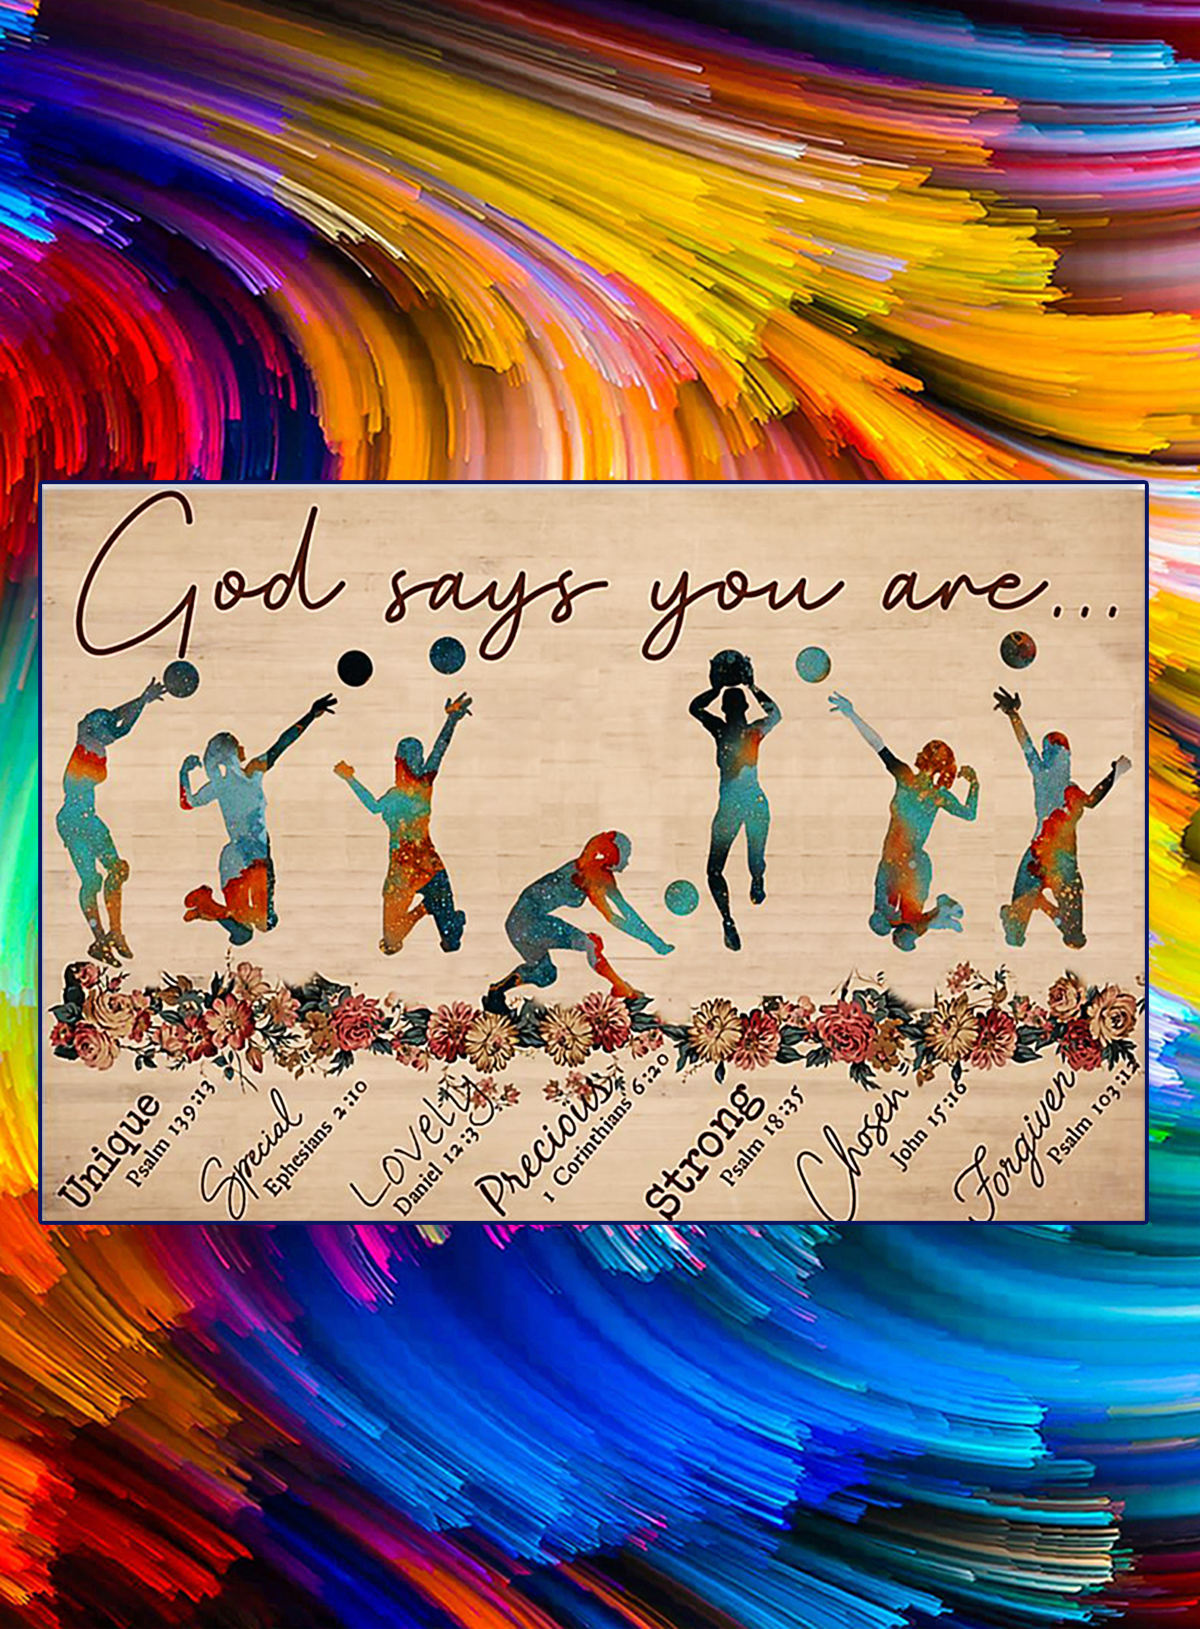 God says you are voleyball poster - A1